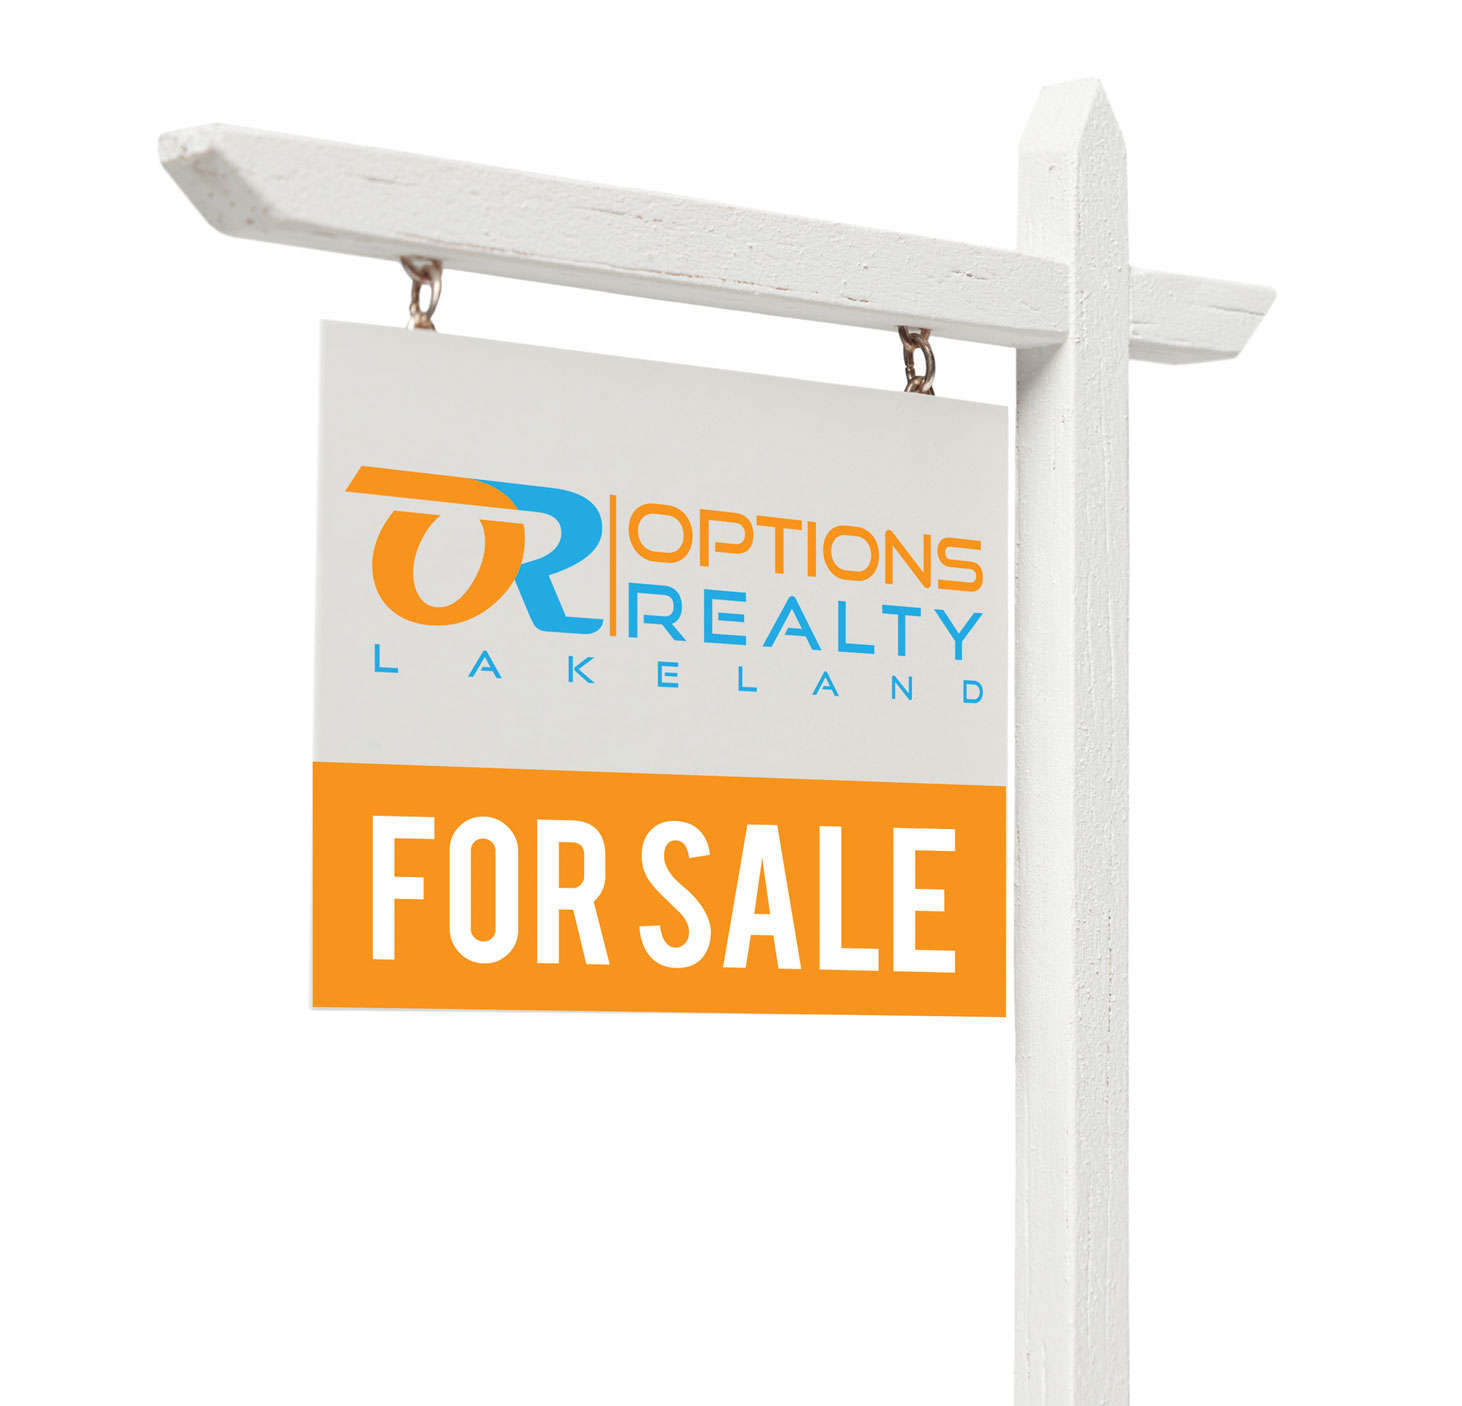 https://optionsrealtylakeland.ca/wp-content/uploads/2017/09/for-sale-sign.jpg